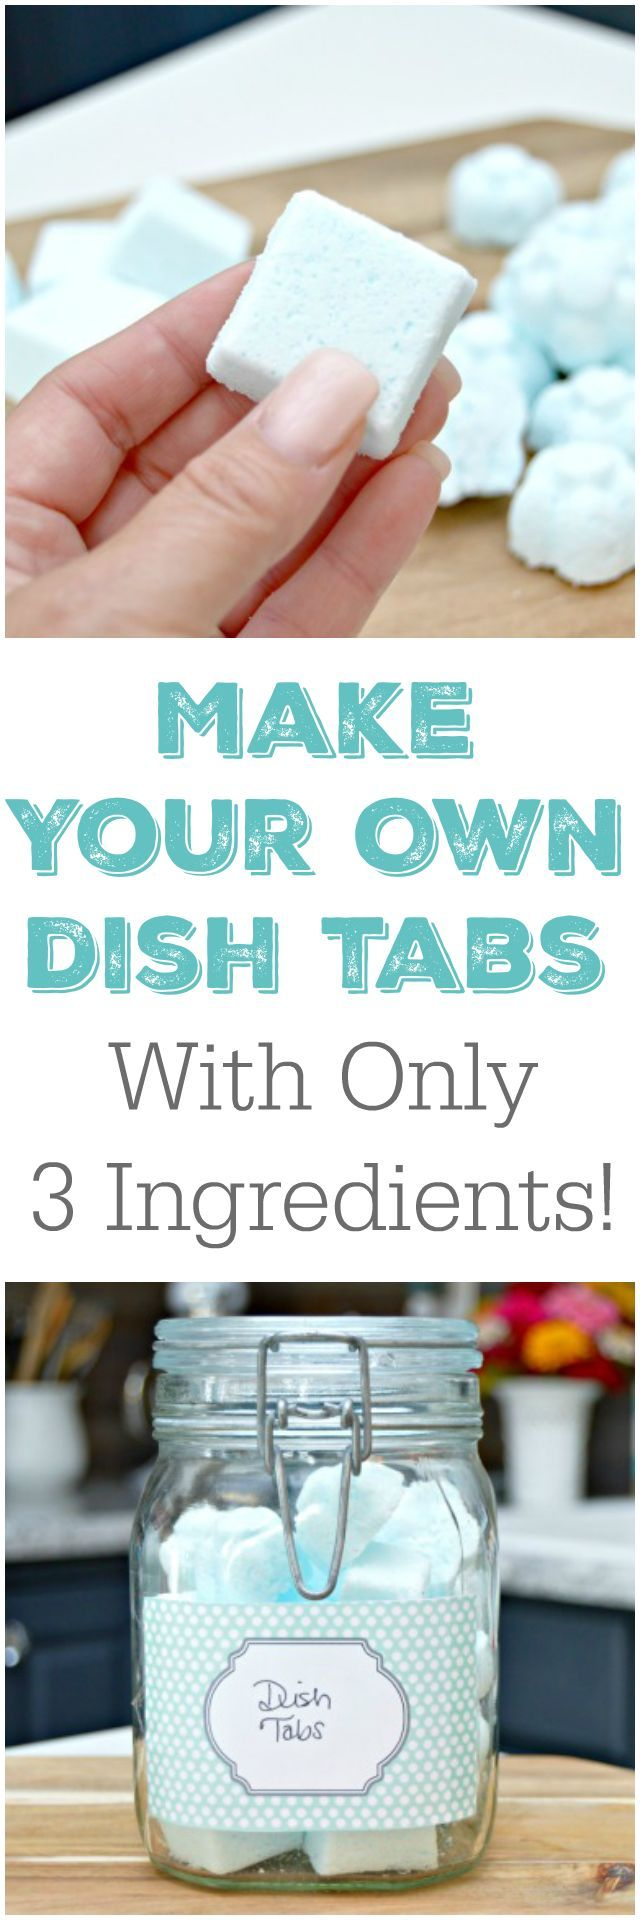 3 Ingredient Homemade Dish Tablets Recipe